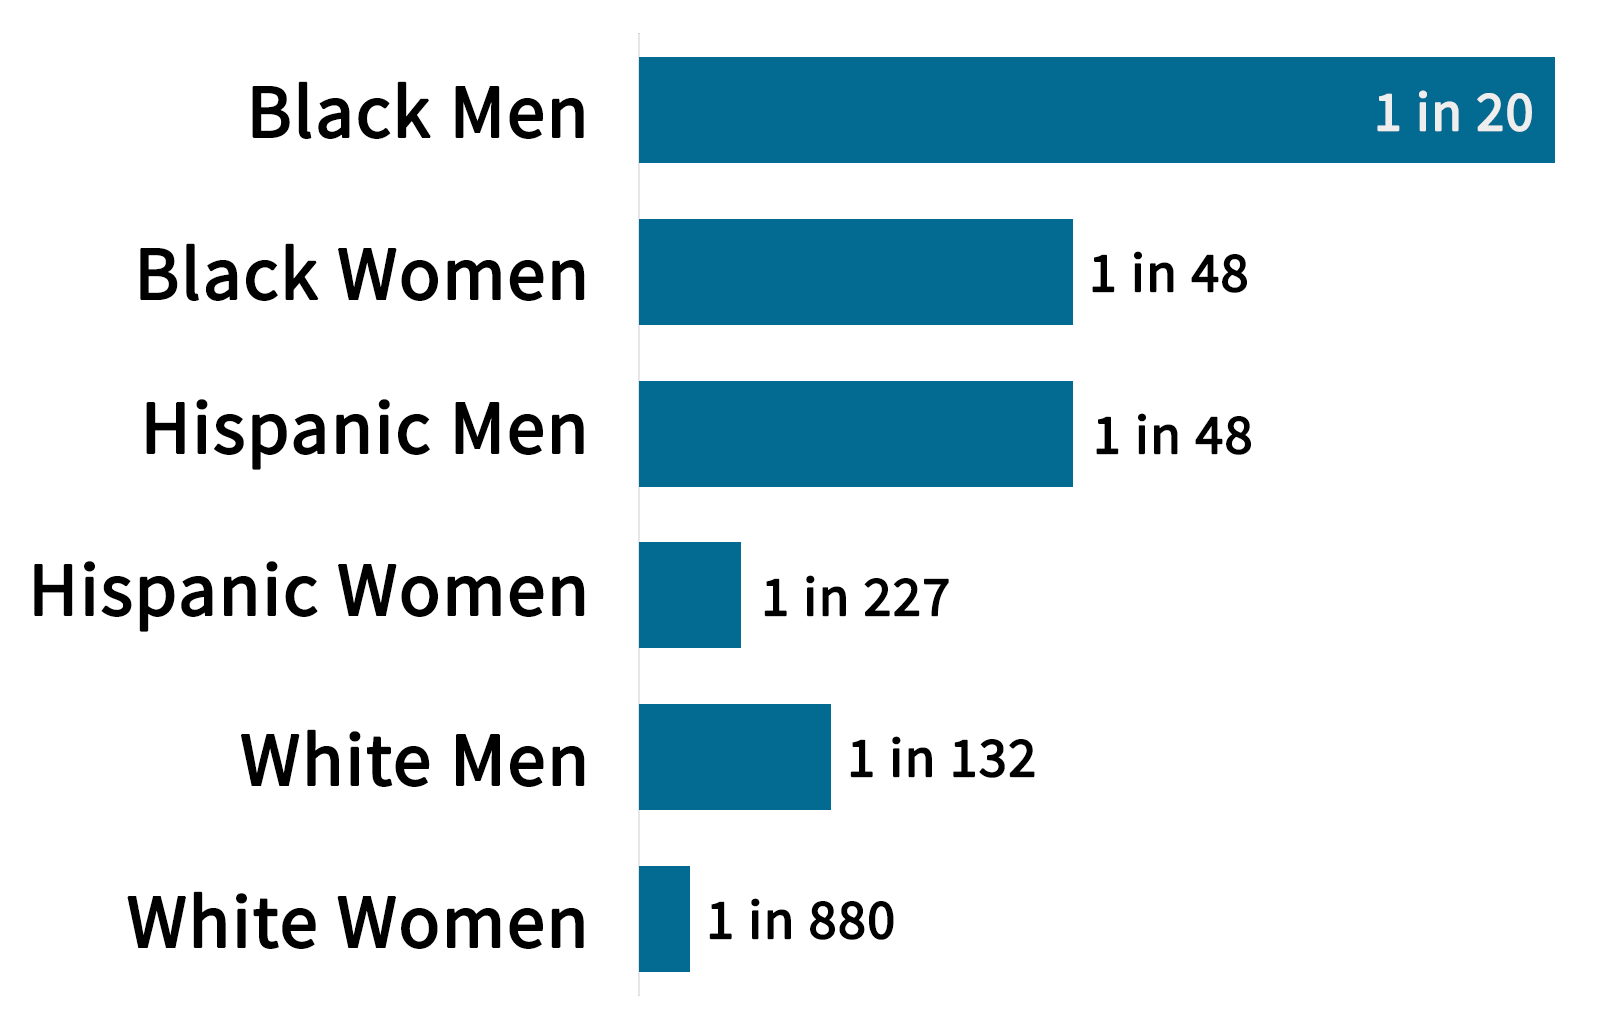 Black men, 1 in 20; Black Women, 1 in 48; Hispanic Men, 1 in 48; Hispanic Women, 1 in 227; White Men, 1 in 132; White Women, 1 in 880